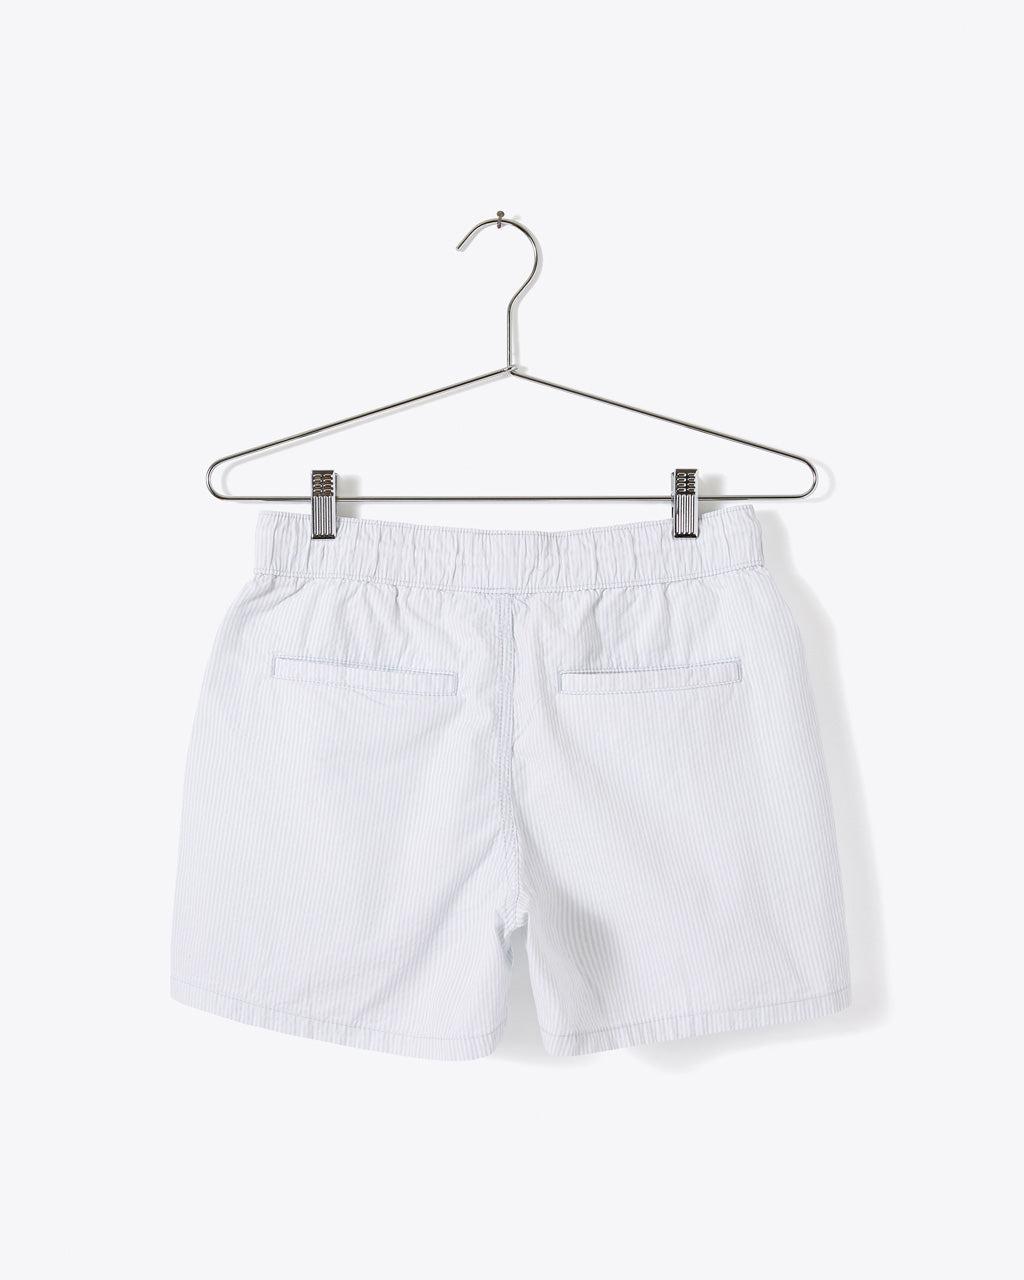 back view of ballad blue shorts with two back pockets shown on hanger